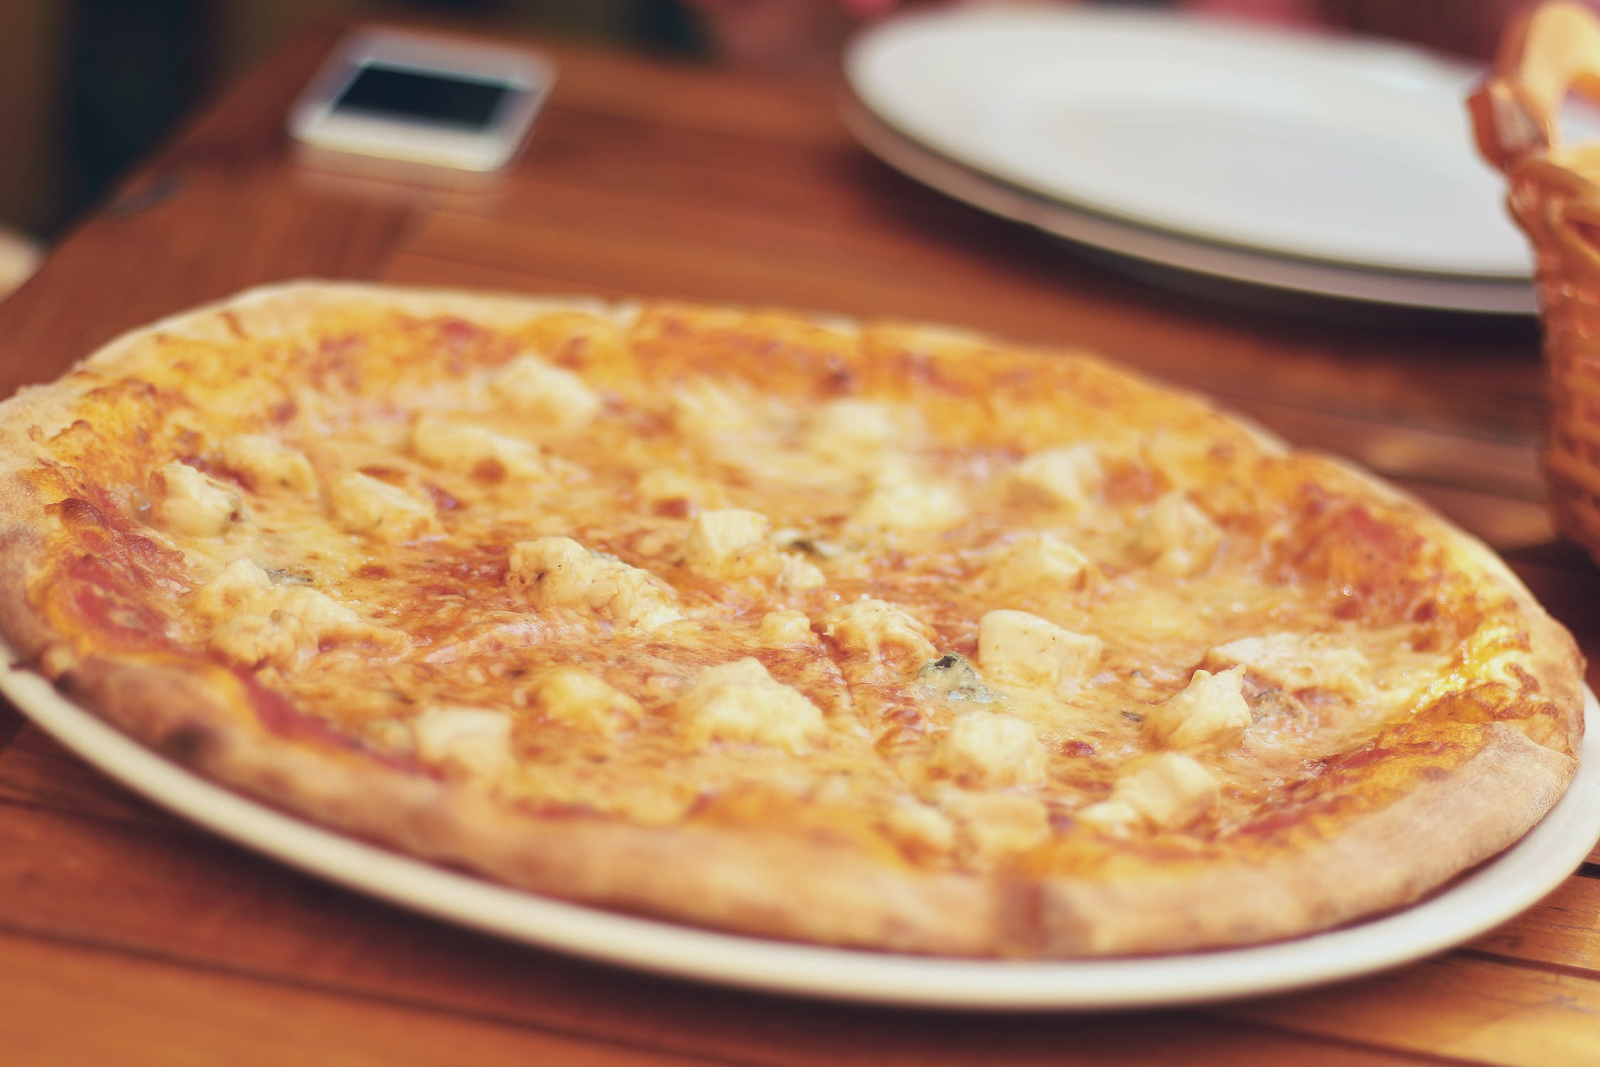 An image of a classic Italian-style pizza that can be found at Rocky's pizza.